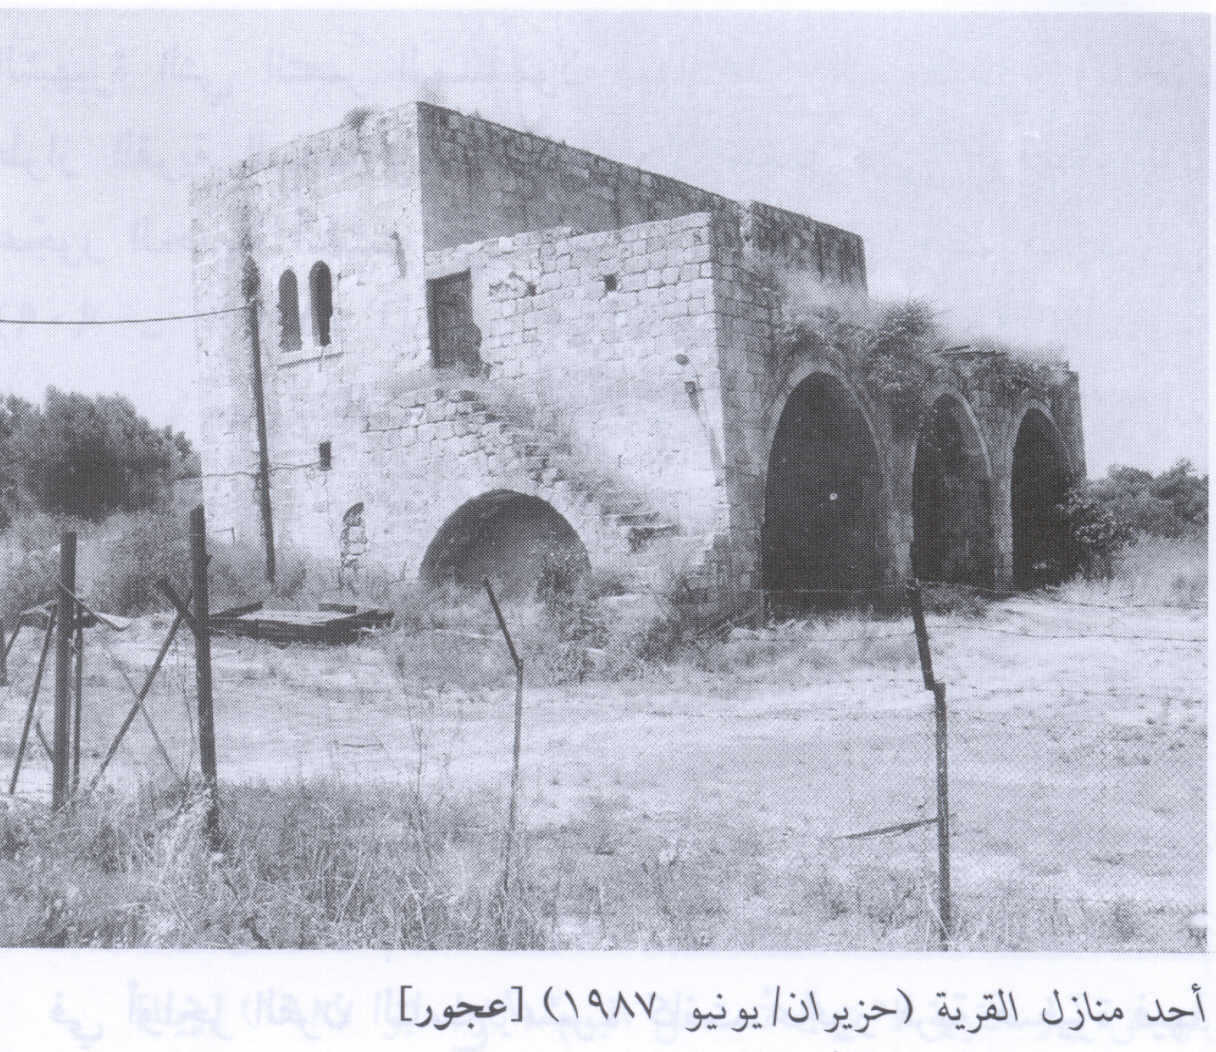 'Ajjur - عجّور : A village house remain standing, 1987